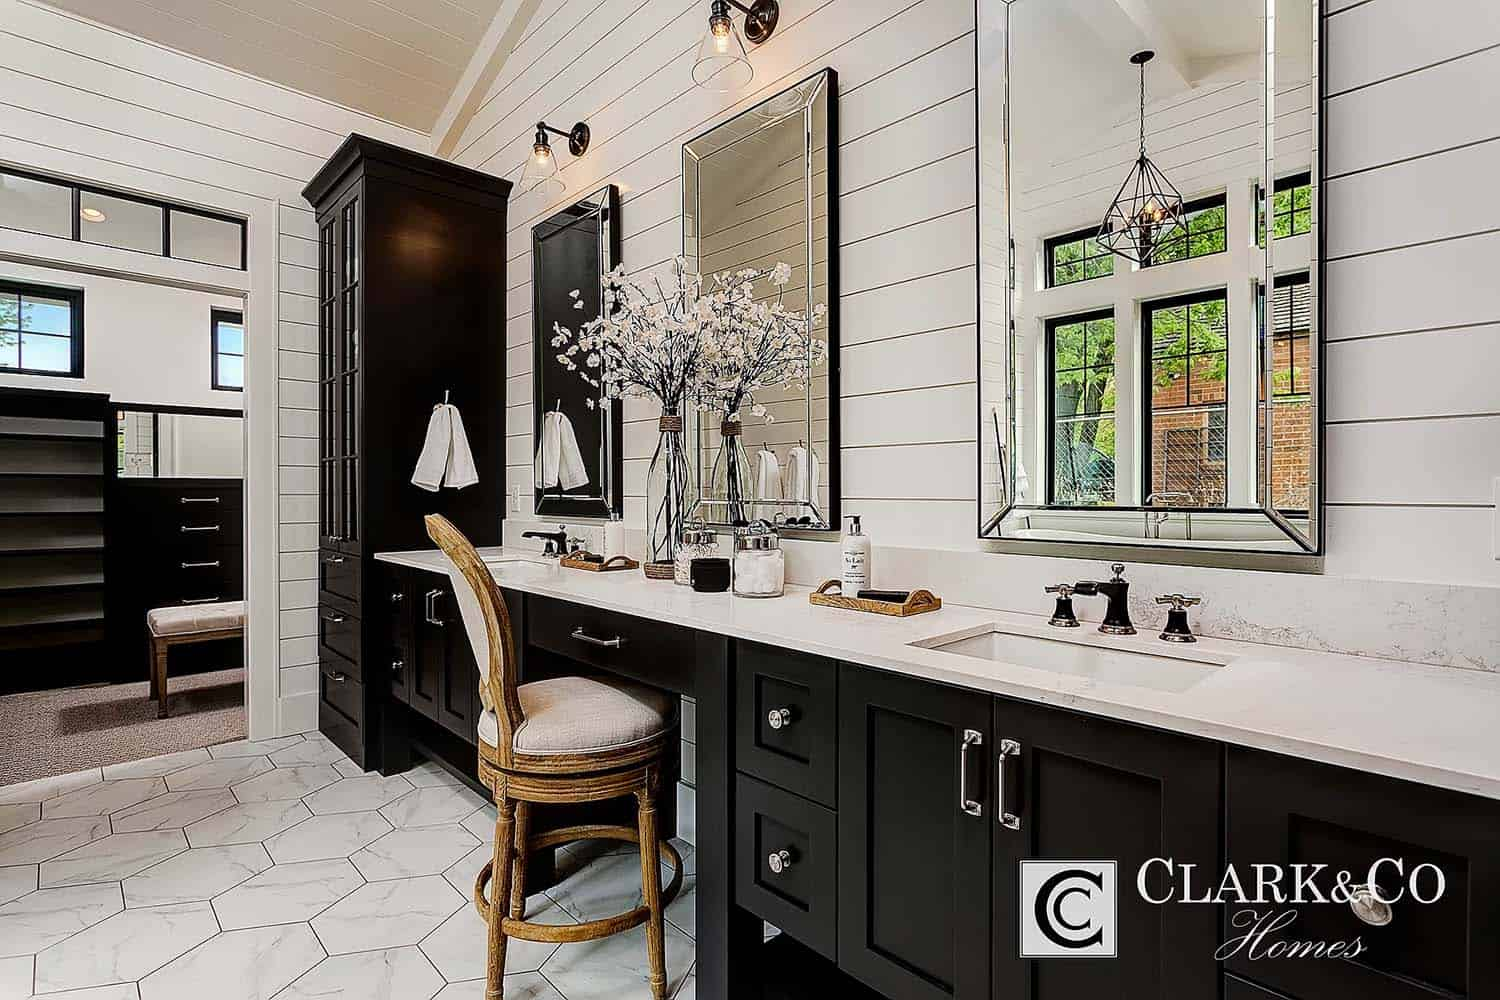 Modern Farmhouse Style-Clark and Co Homes-27-1 Kindesign